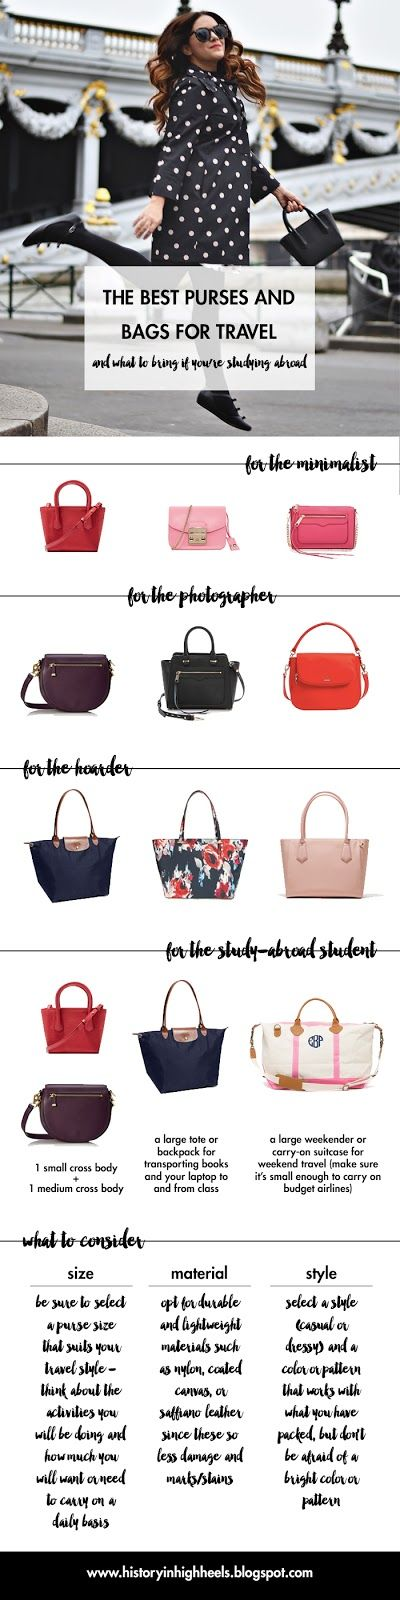 History In High Heels: The Best Purses for Travel and Studying Abroad